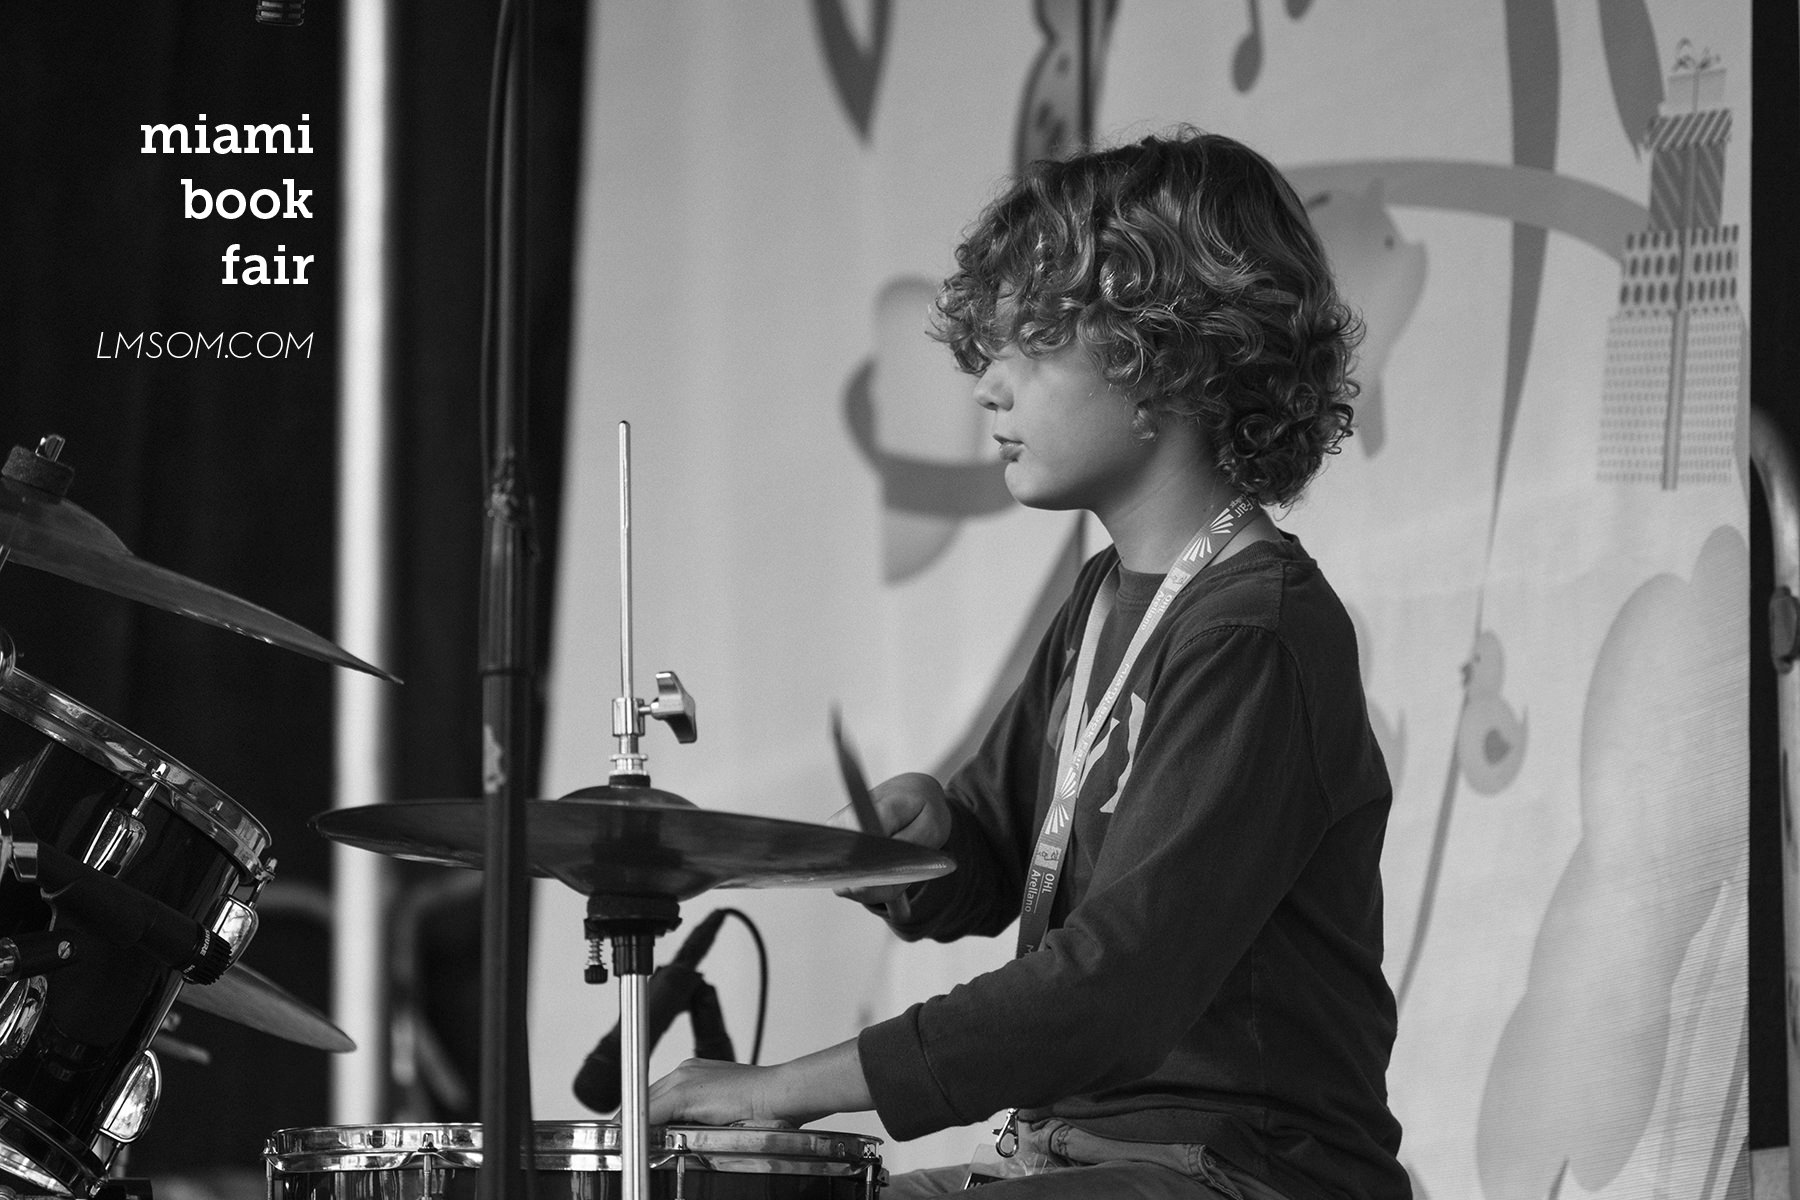 Live 1 student, Aitor performing at the Miami Book Fair   #steadybeat